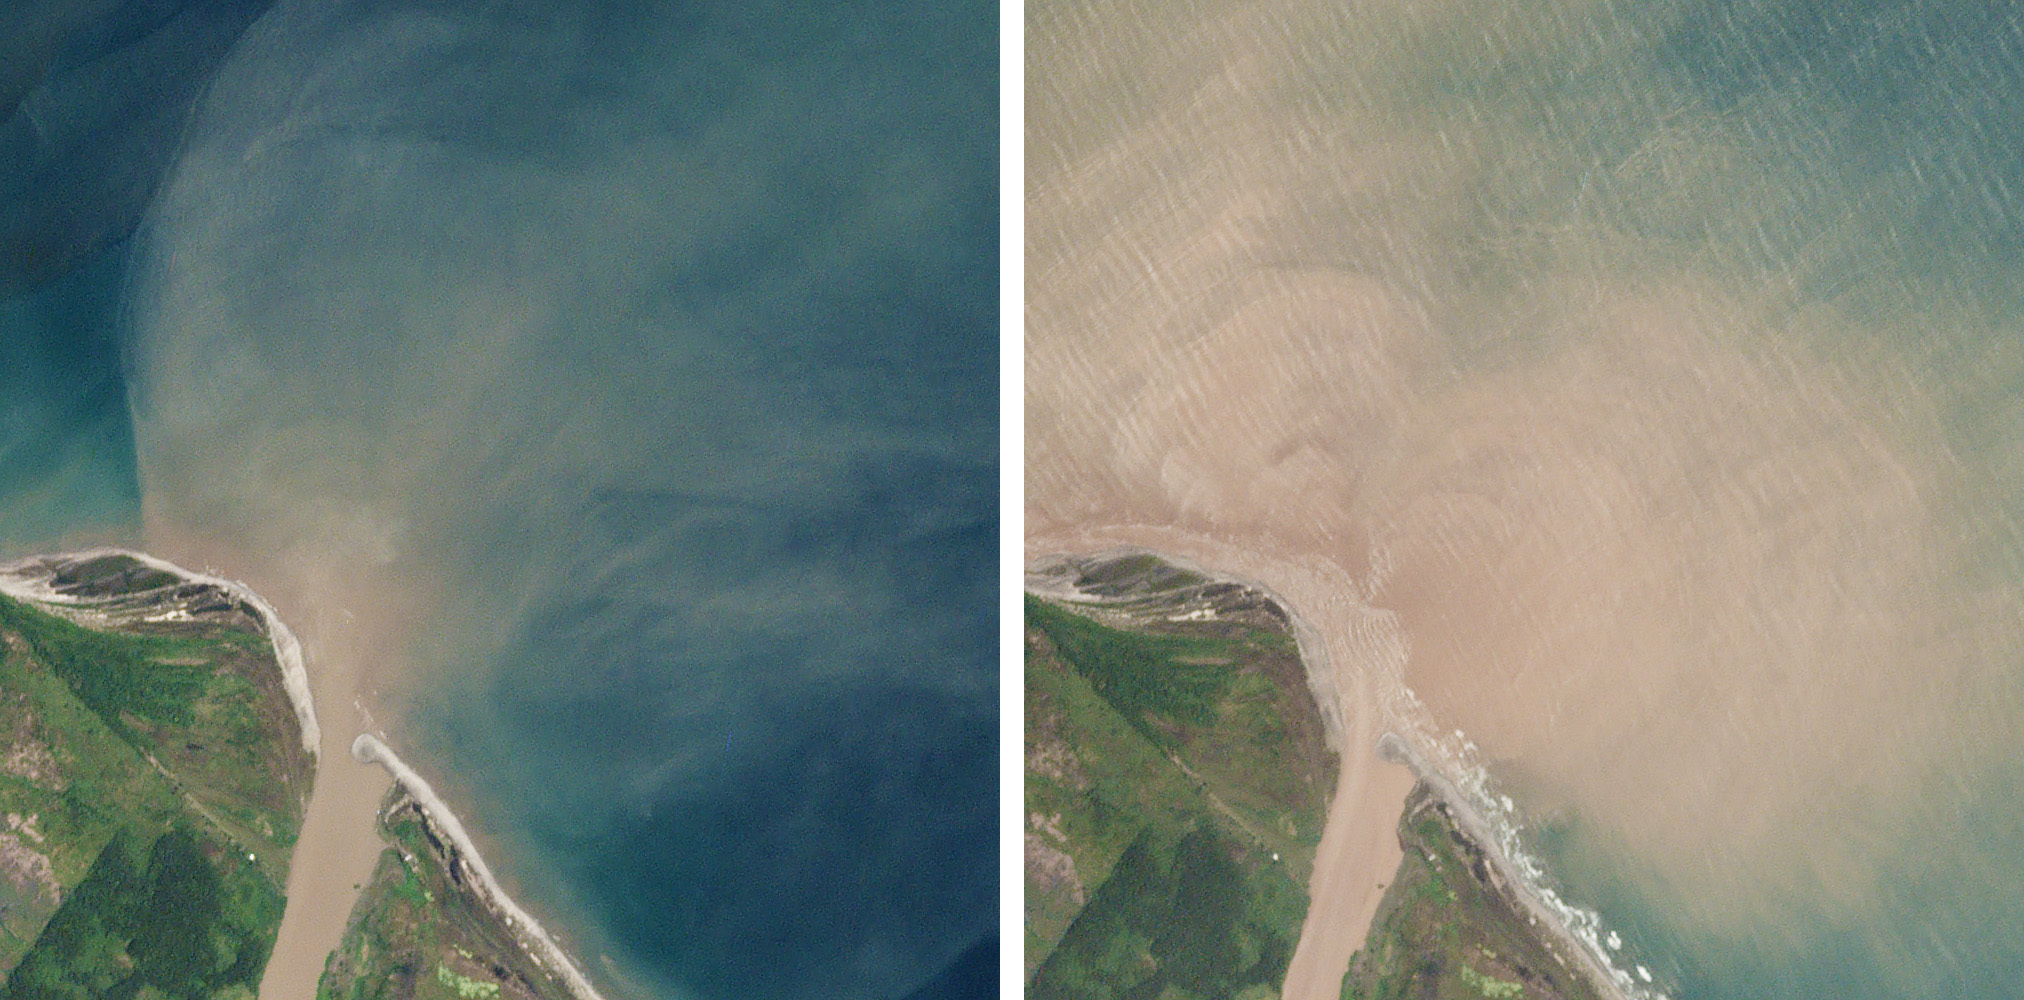 Planet imagery shows examples of sediment-rich water flowing into the Caribbean Sea which were associated with discharges of plastic from the Motagua River after heavy rainfall on March 9, 2018 (left) and September 6, 2018 (right). © 2018, Planet Labs Inc. All Rights Reserved.